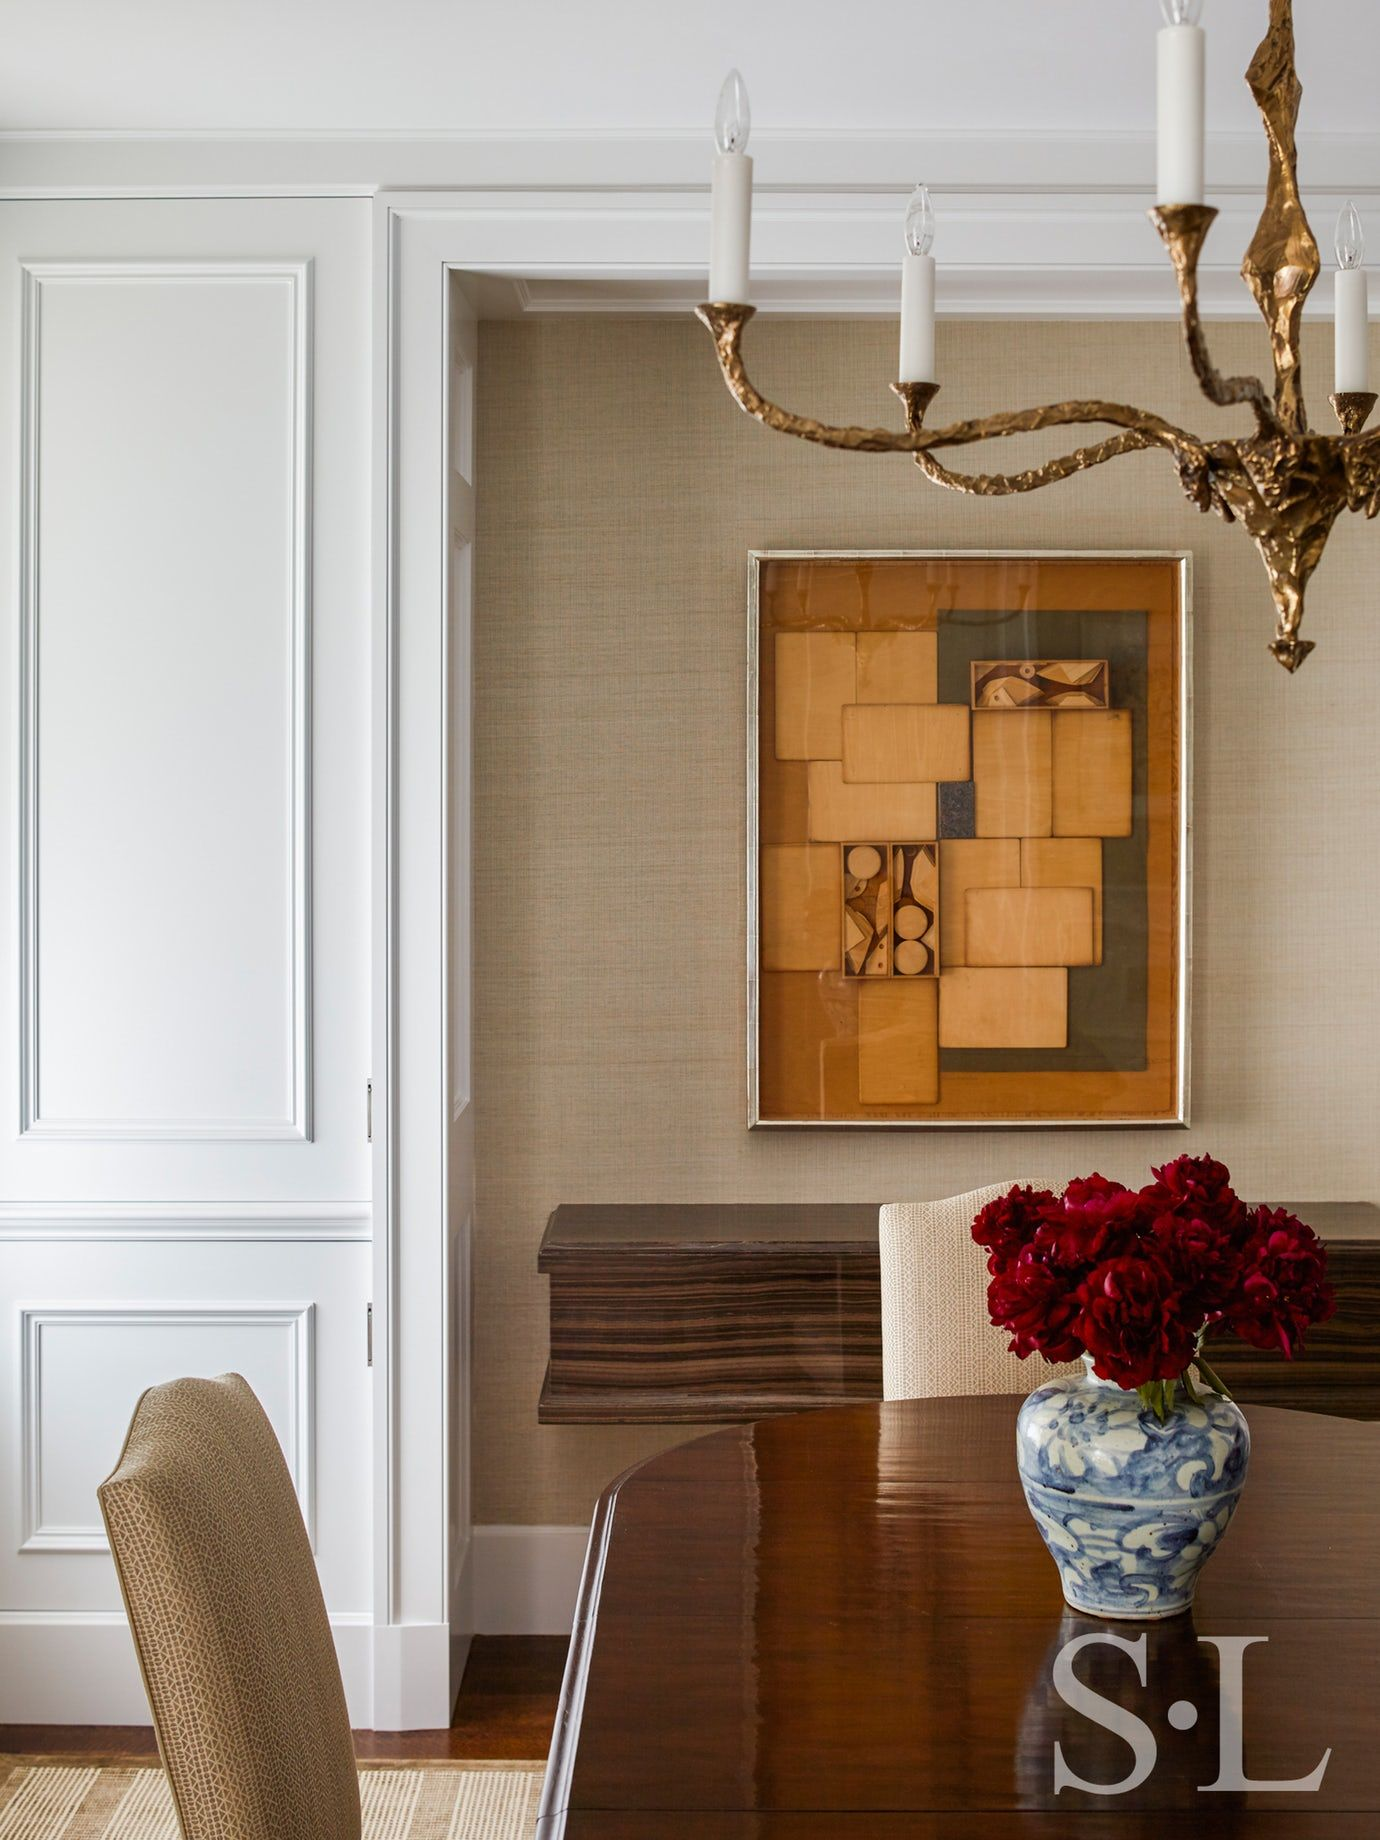 Luxury Showcase For Living Room Royal Art Deco: Gold Coast Penthouse Dining Contemporary Modern By Suzanne